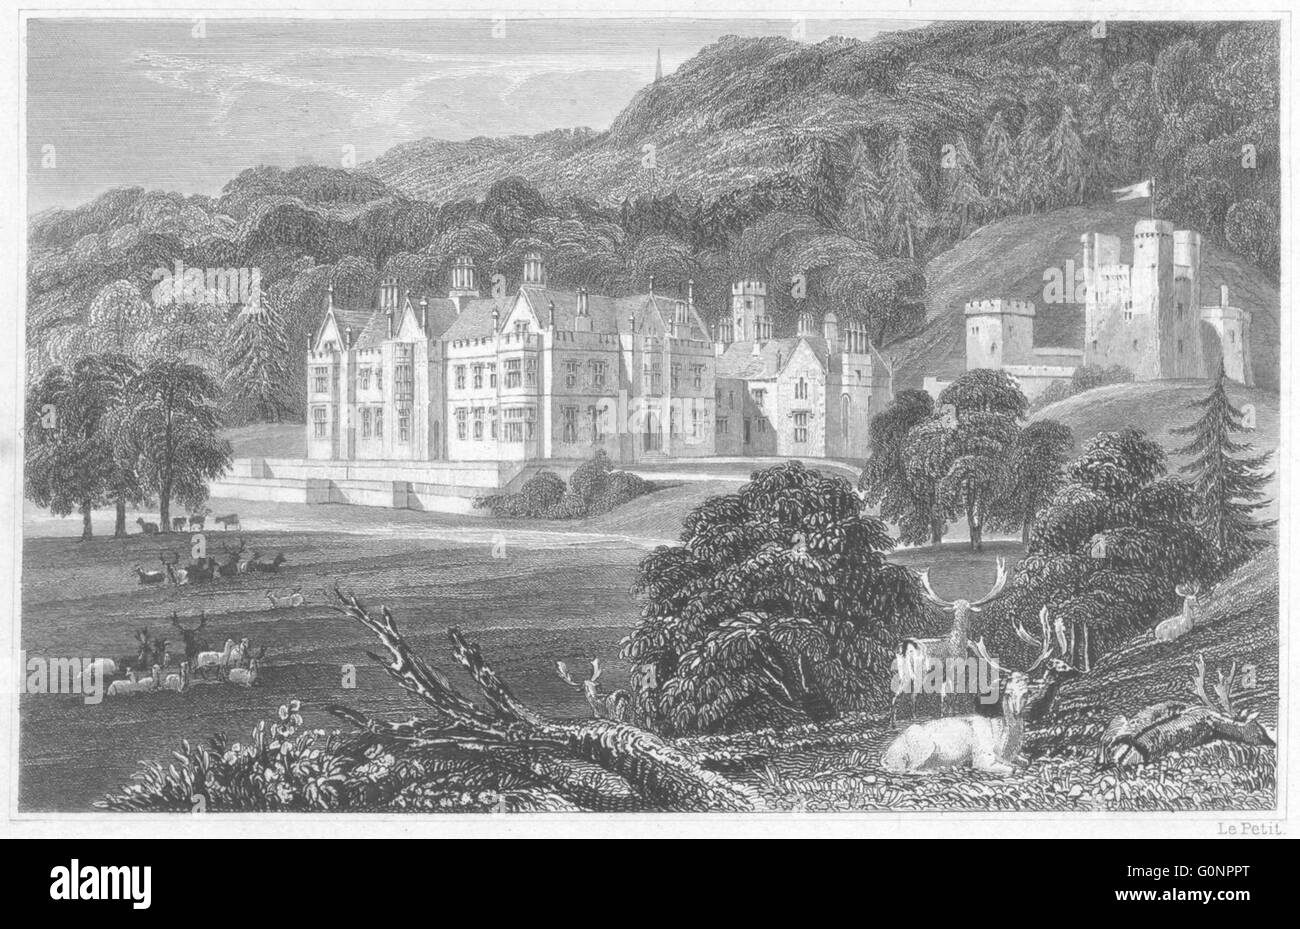 DEVON: Mamhead Hall, near Dawlish (The seat of RW Newman Esq), old print 1829 - Stock Image